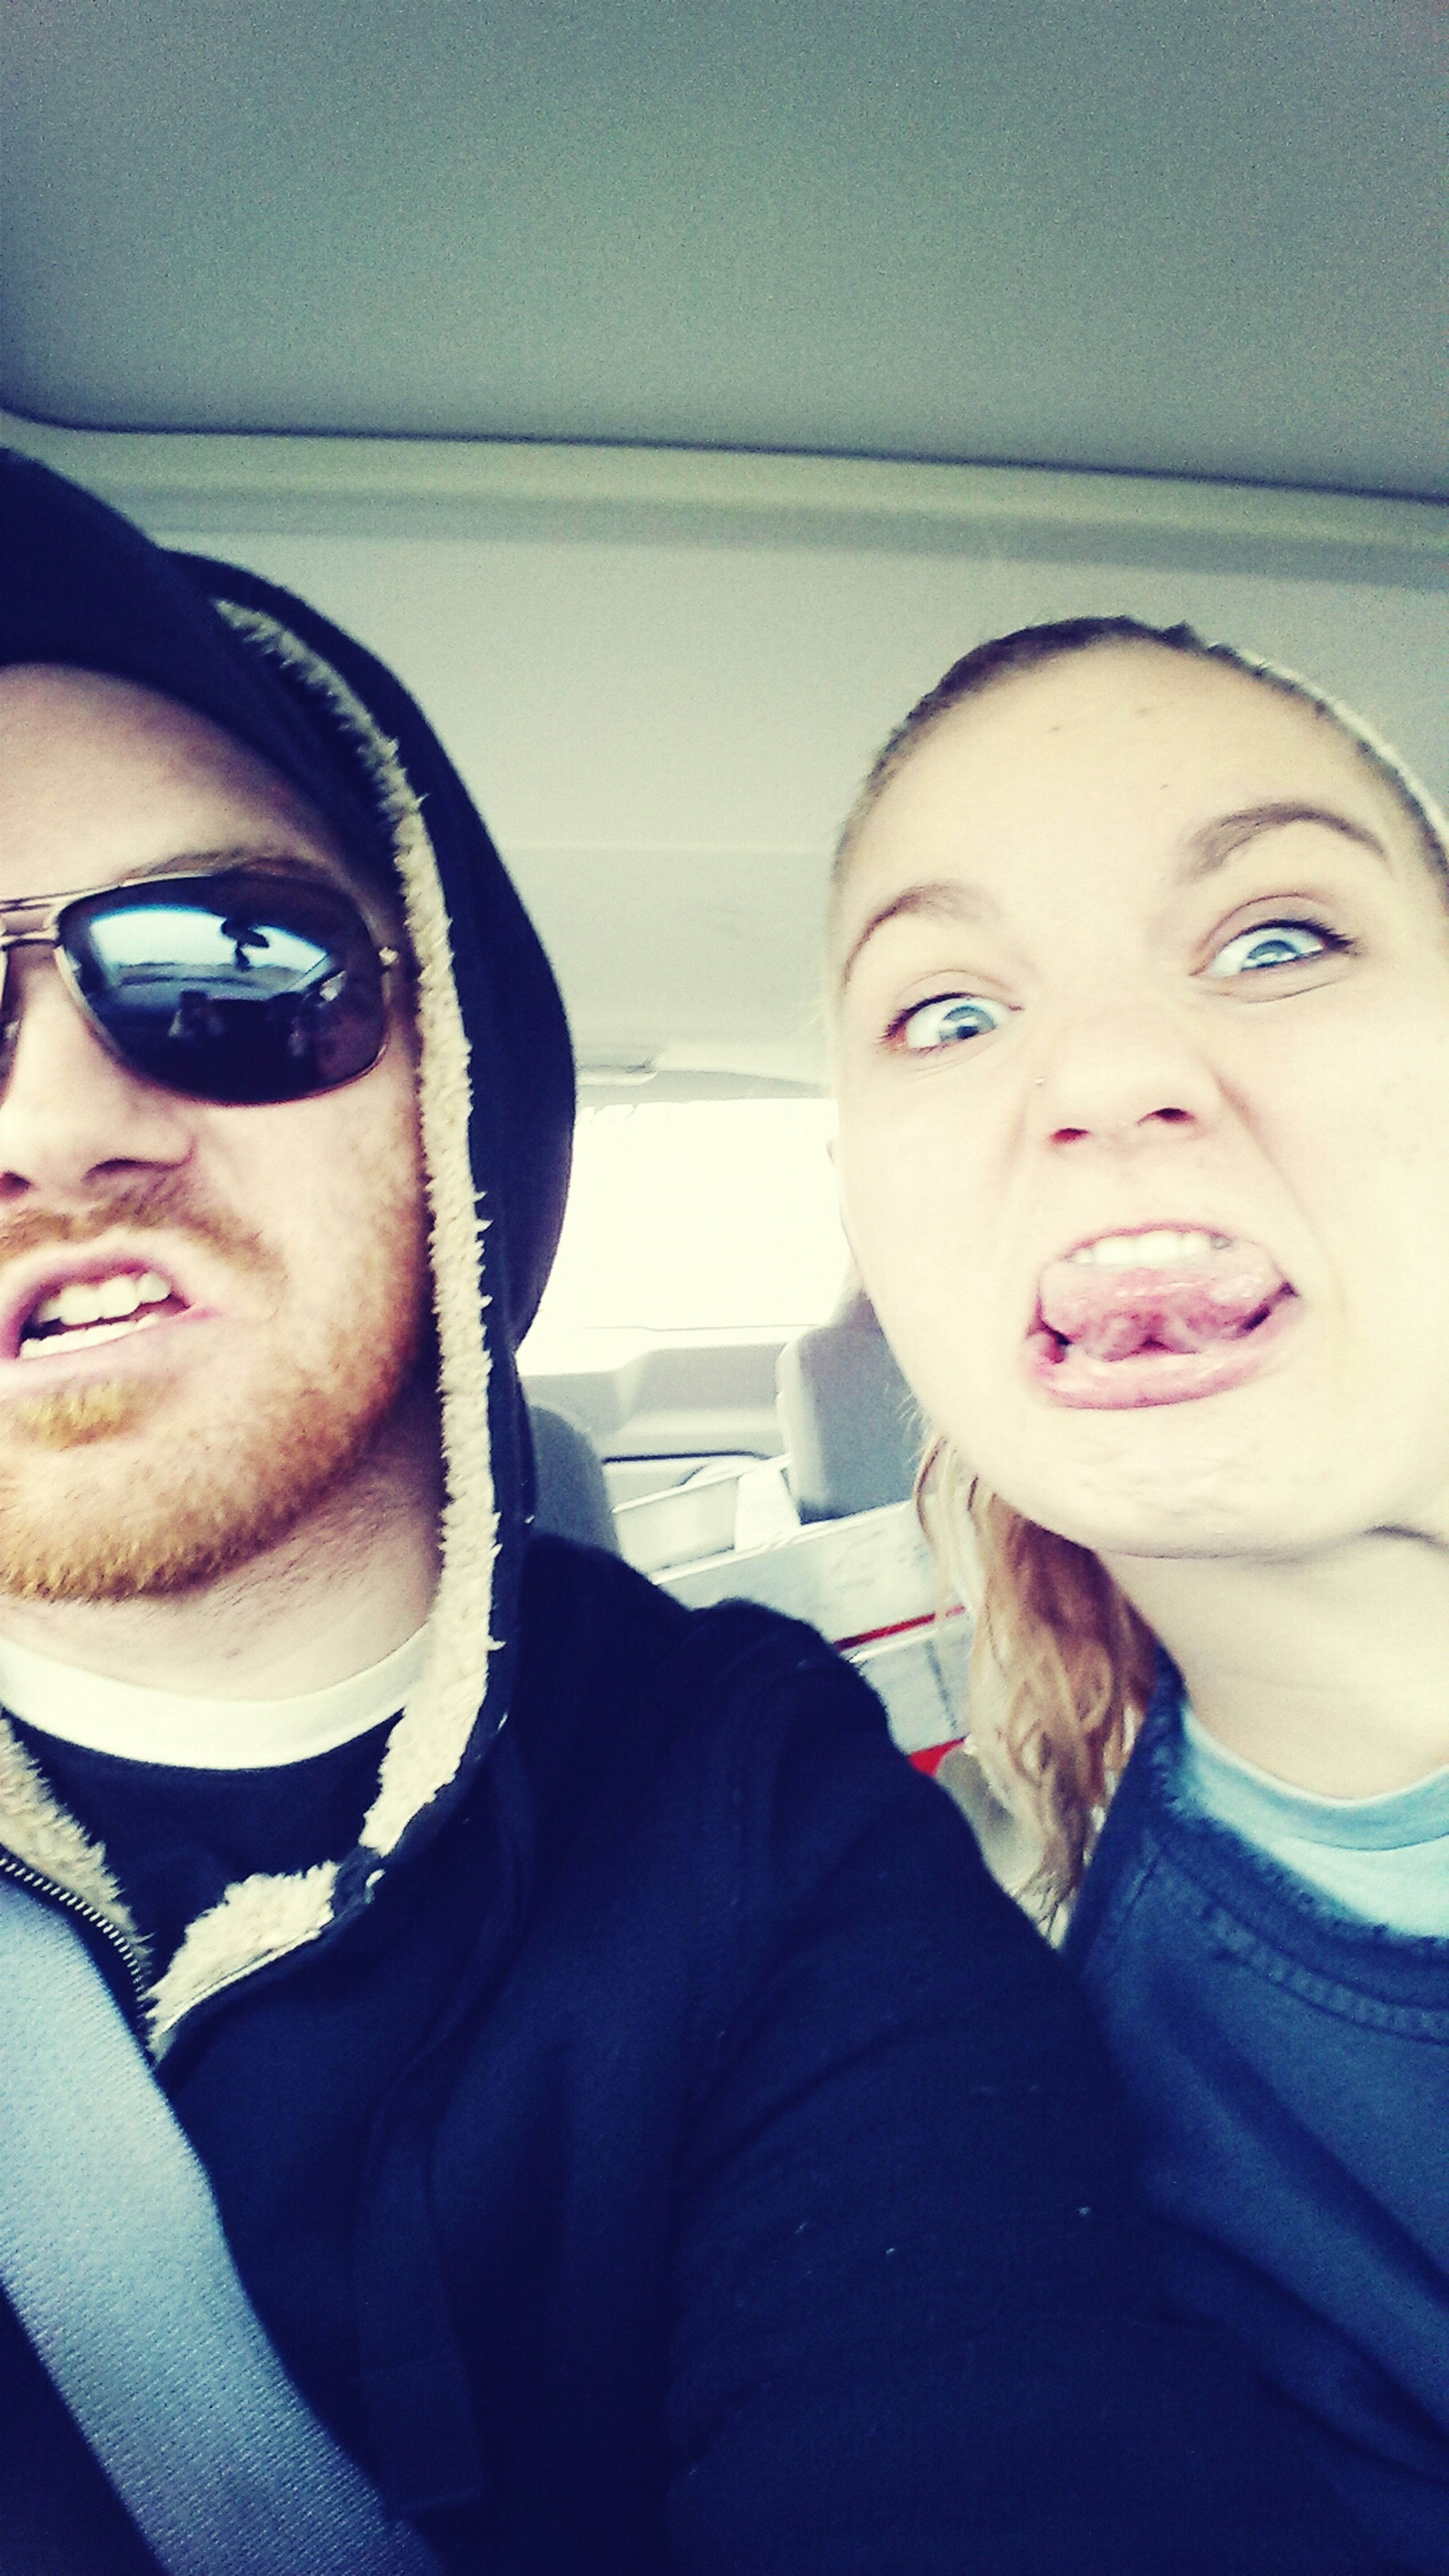 Me and sis being losers